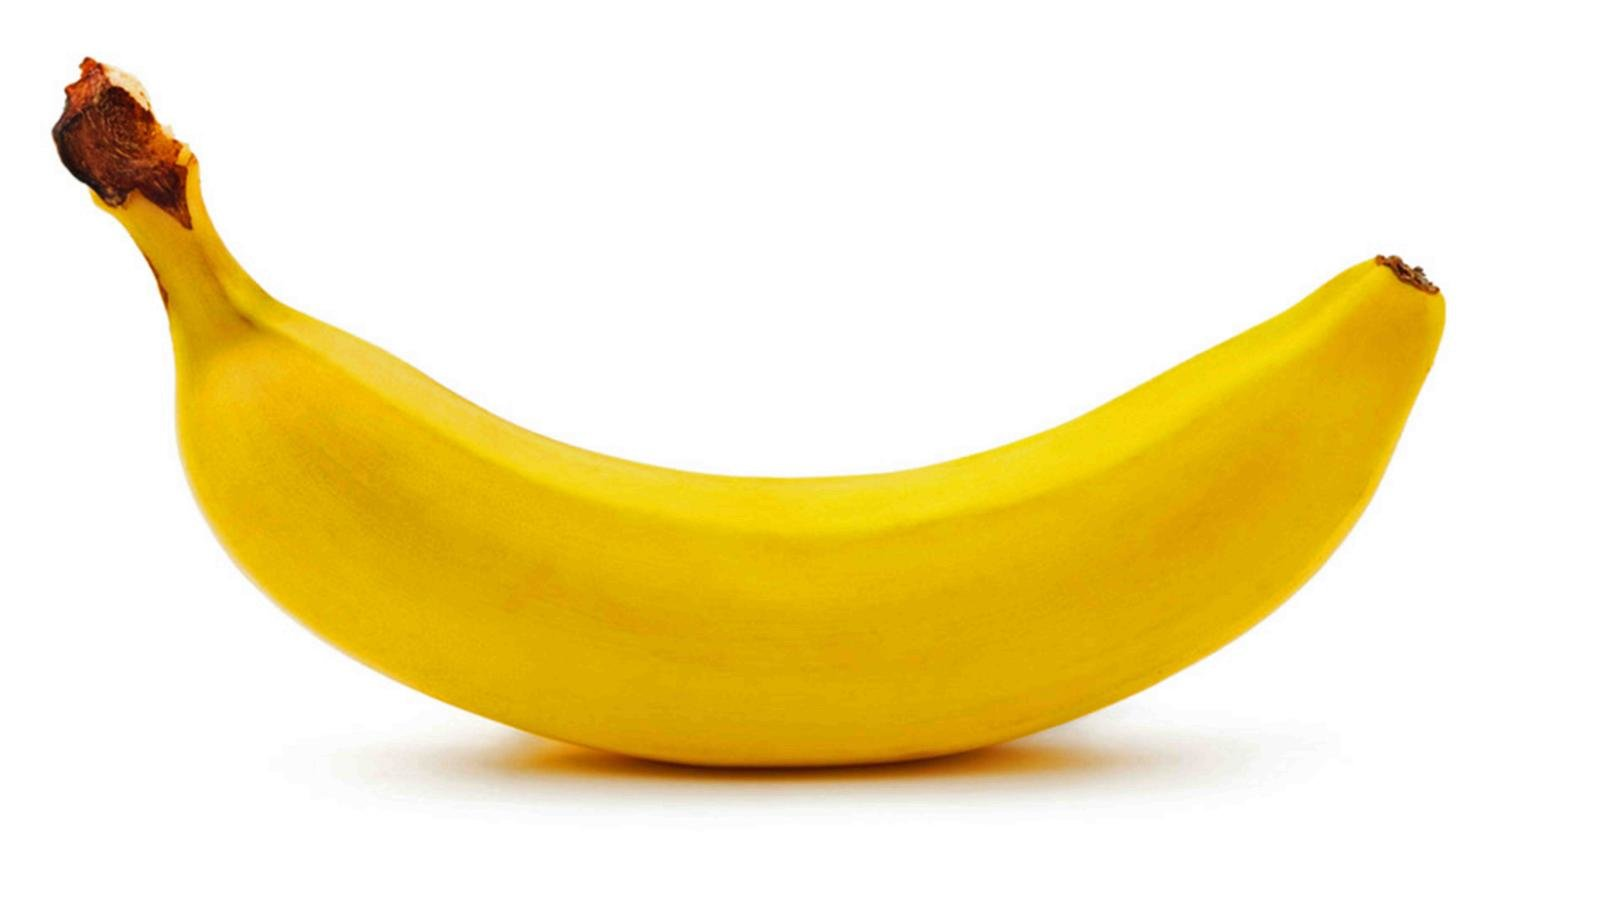 Best Banana wallpaper ID:463162 for High Resolution hd 1600x900 computer